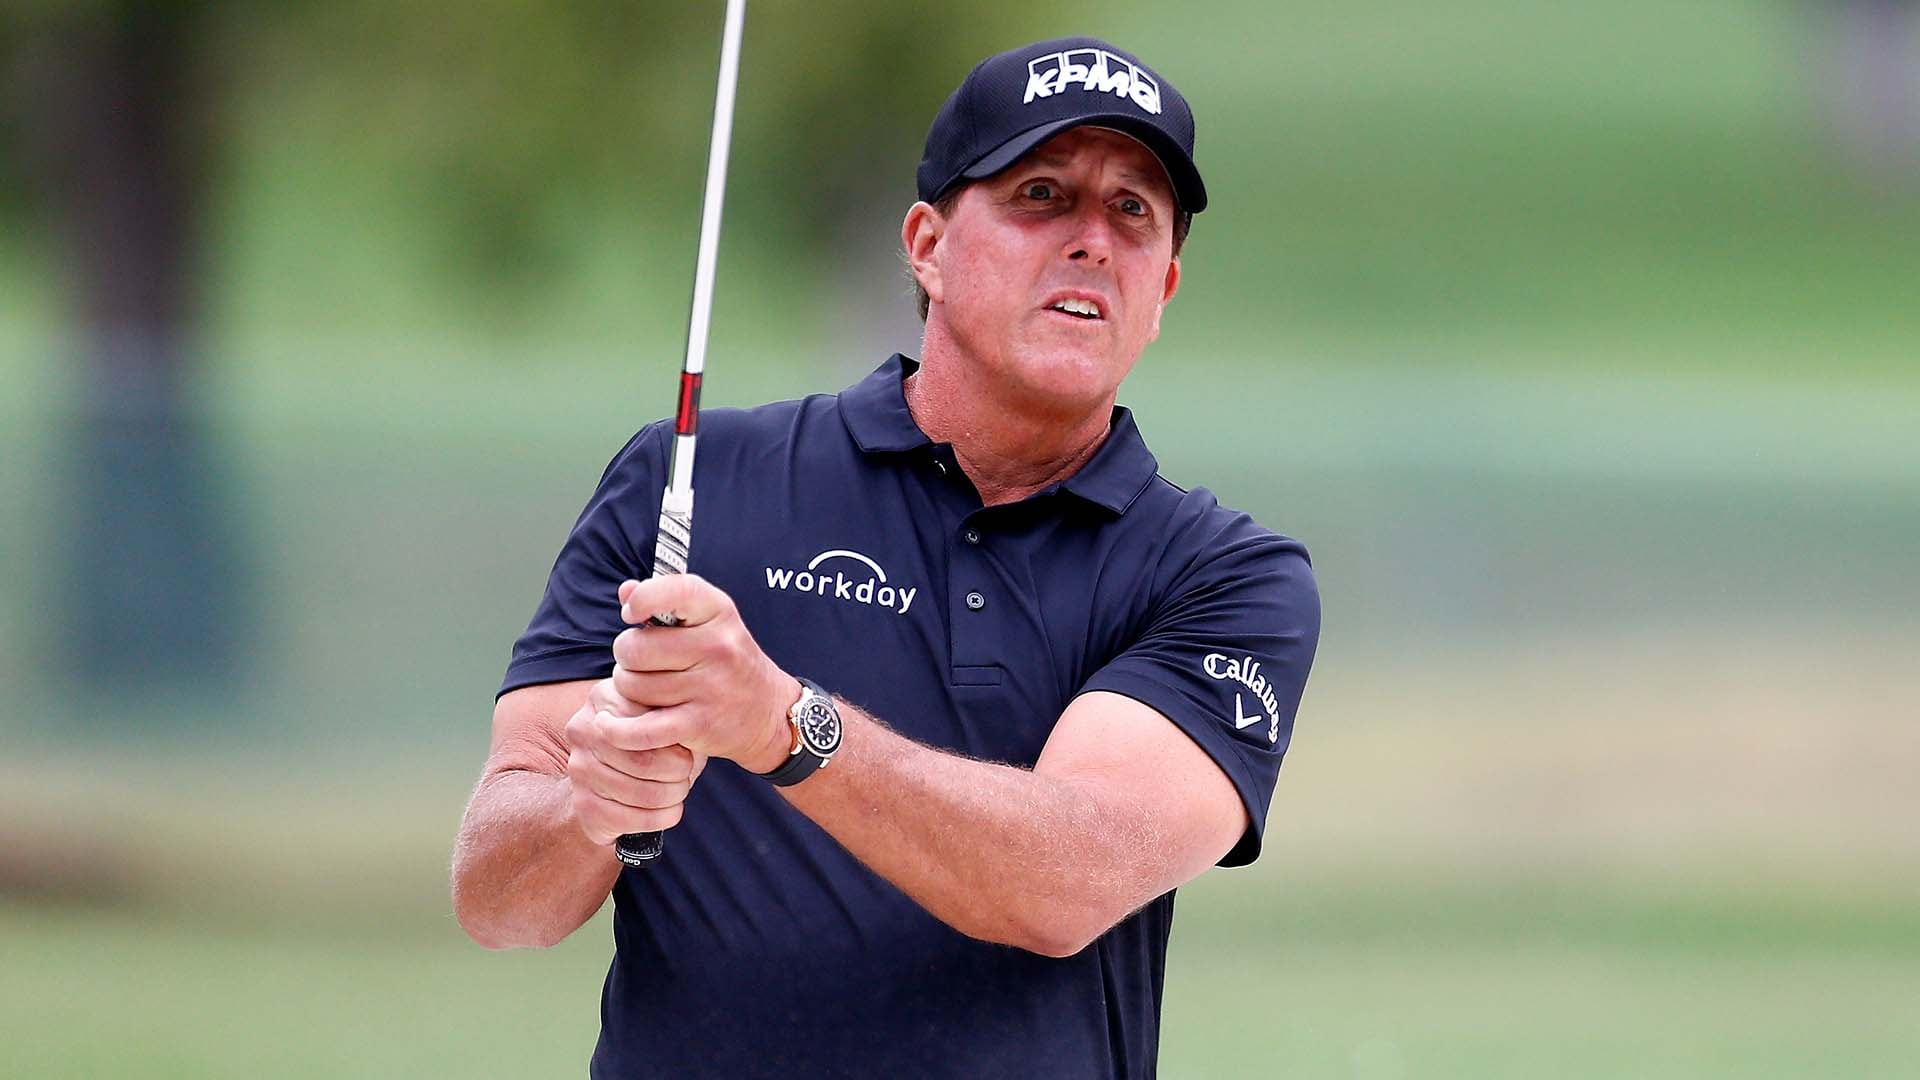 Phil Mickelson US Open exemption